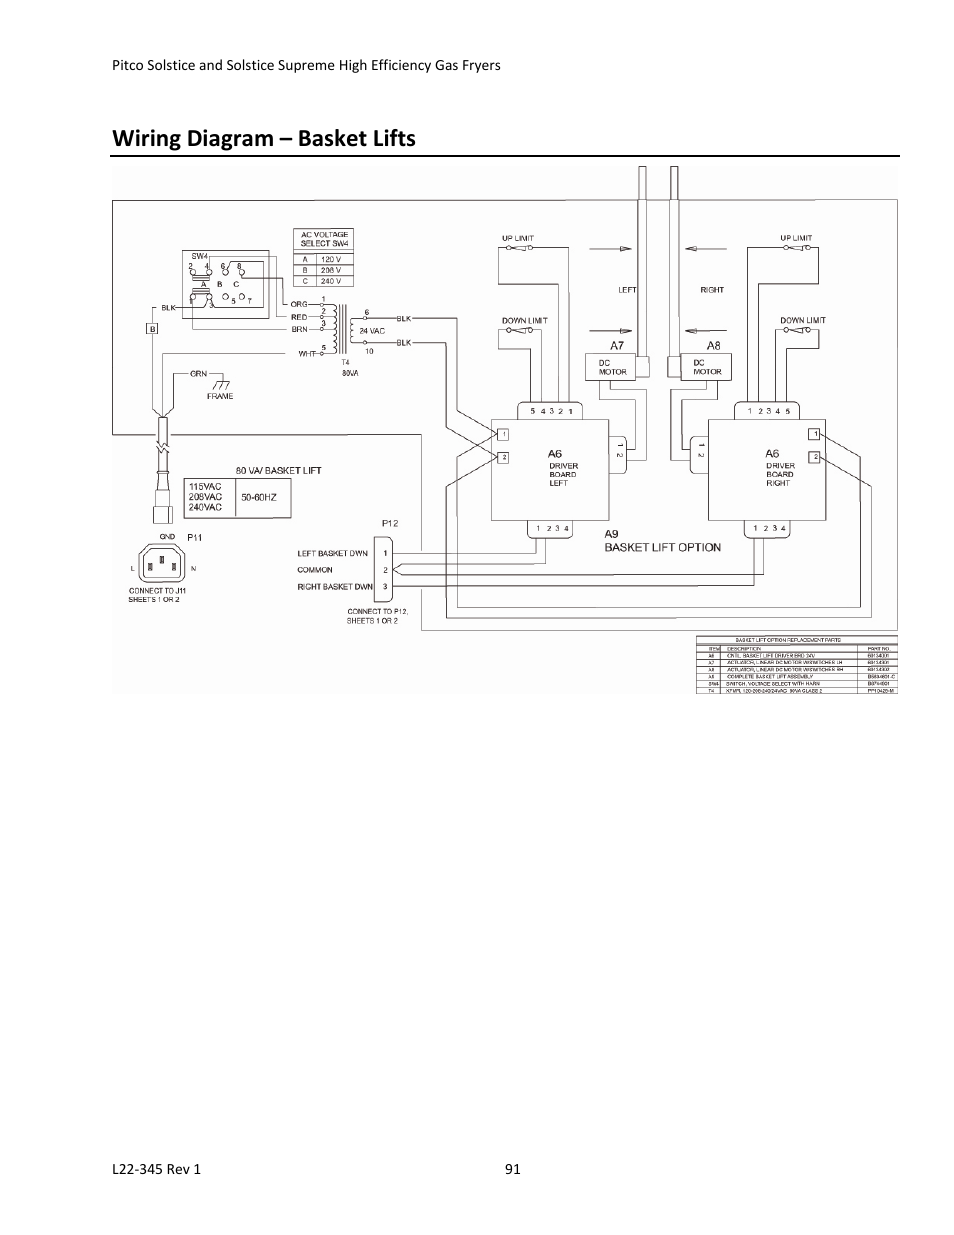 Wiring Diagram  U2013 Basket Lifts